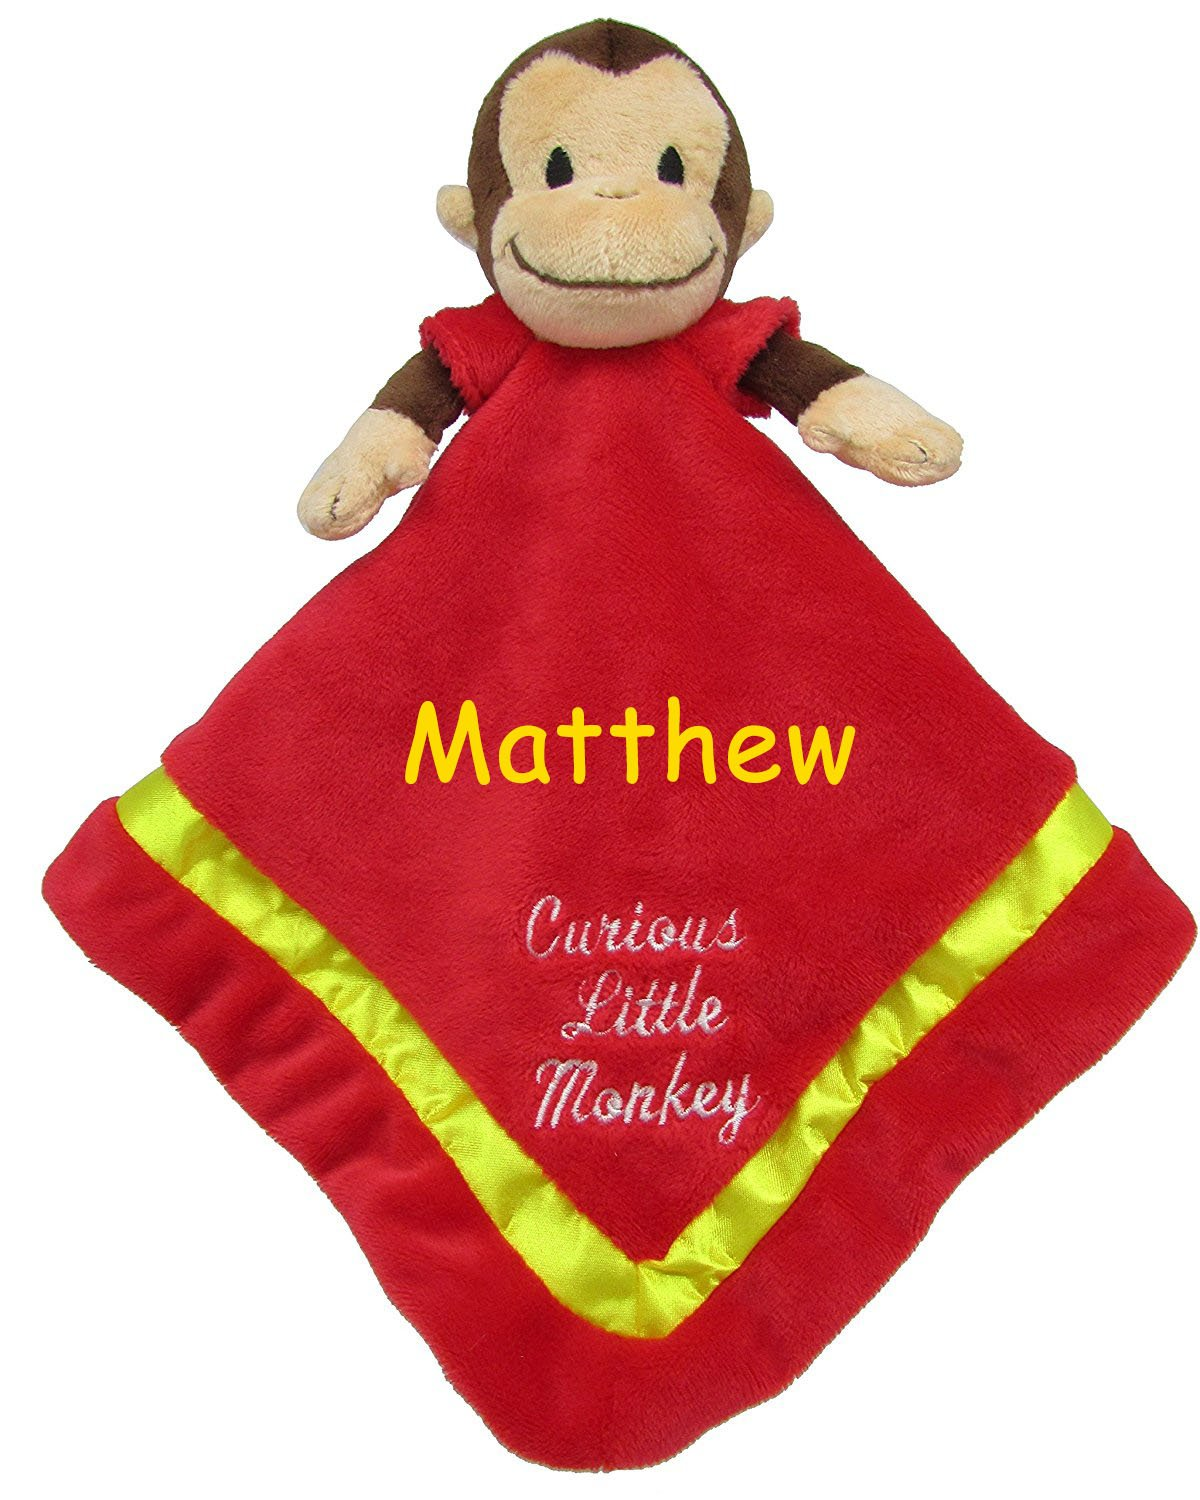 18 Inches Kids Preferred Personalized Curious George Curious Little Monkey Red and Yellow Snuggler Baby Blanket with Name Embroidery